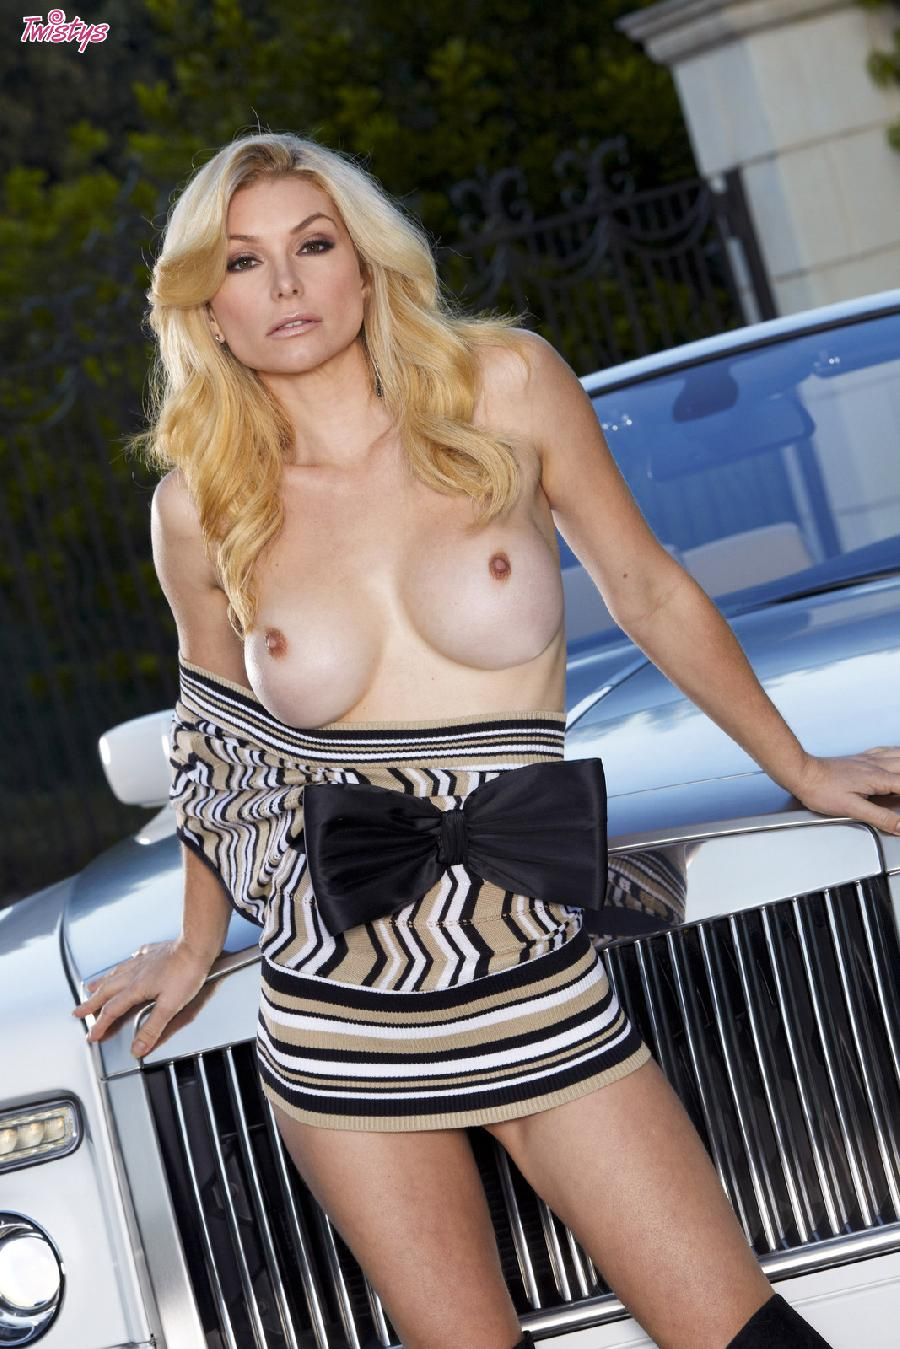 Heather Vandeven wanna catch a ride - 3